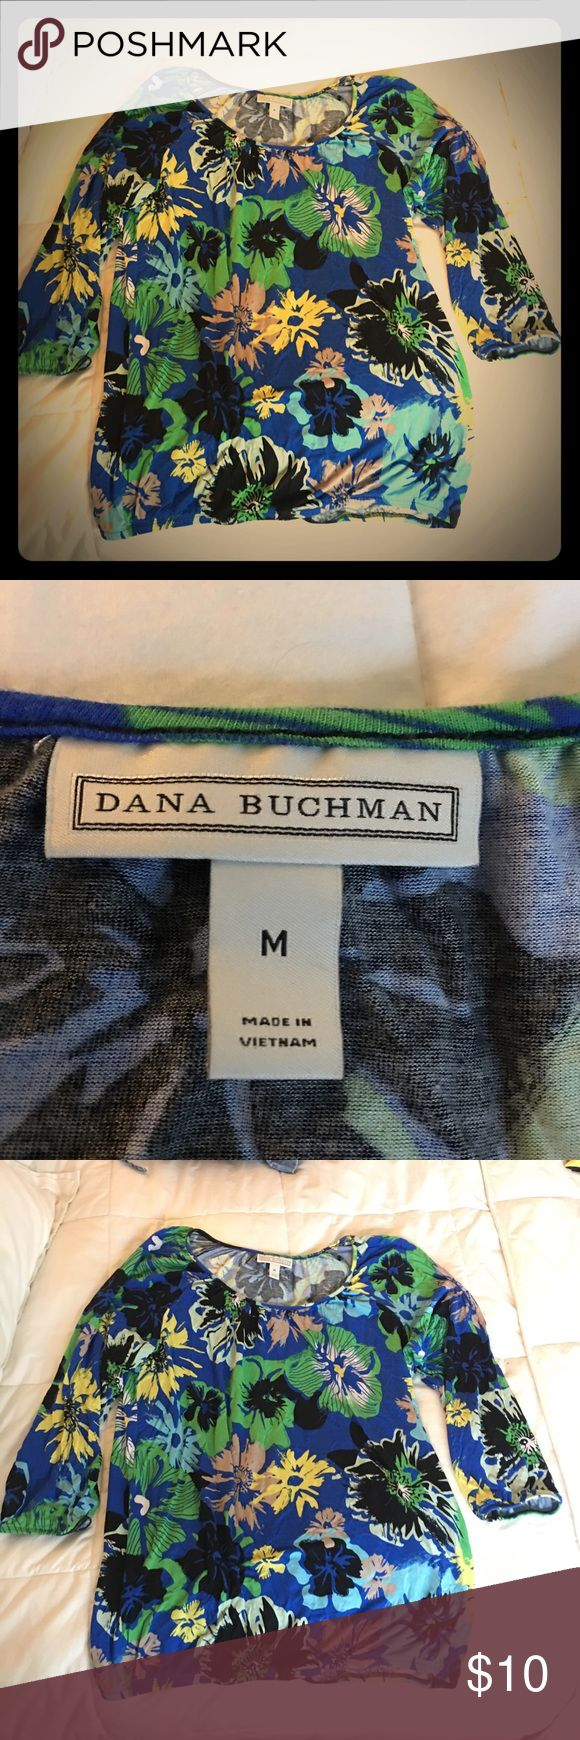 Dana Bushman Floral Print Blouse This fun comfortable blouse travels very well roll it up put your suitcase go-go go to Hawaii. It's a medium size but very forgiving. Dana Buchman Tops Blouses